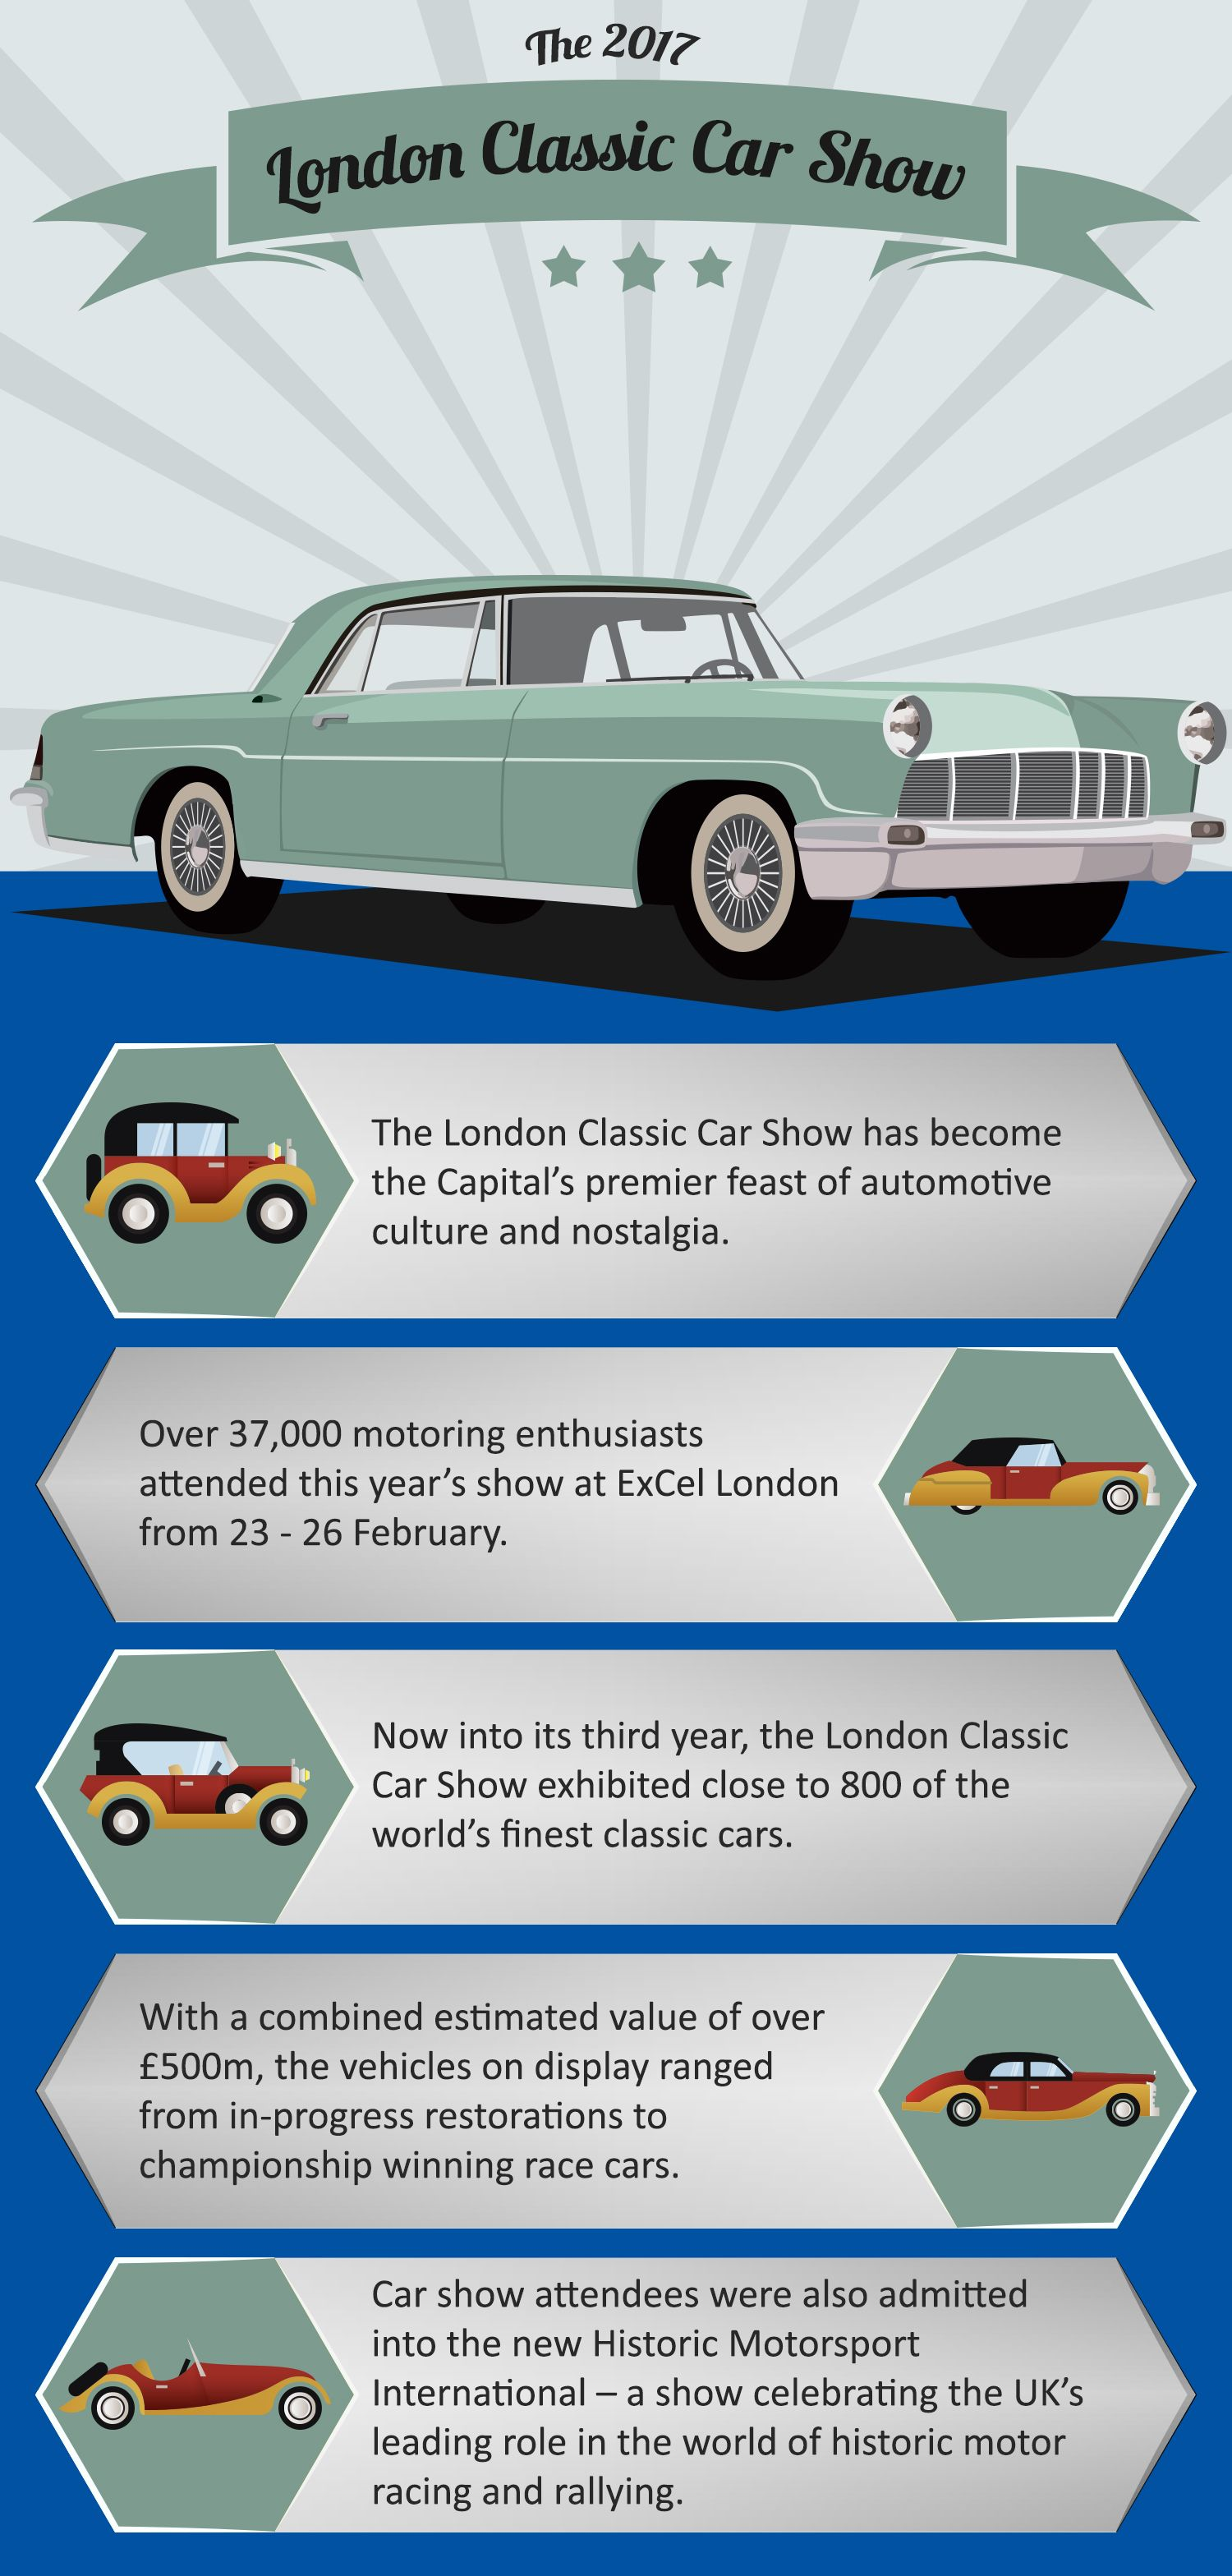 Highlights from the London Classic Car Show 2017 - Brian Barso